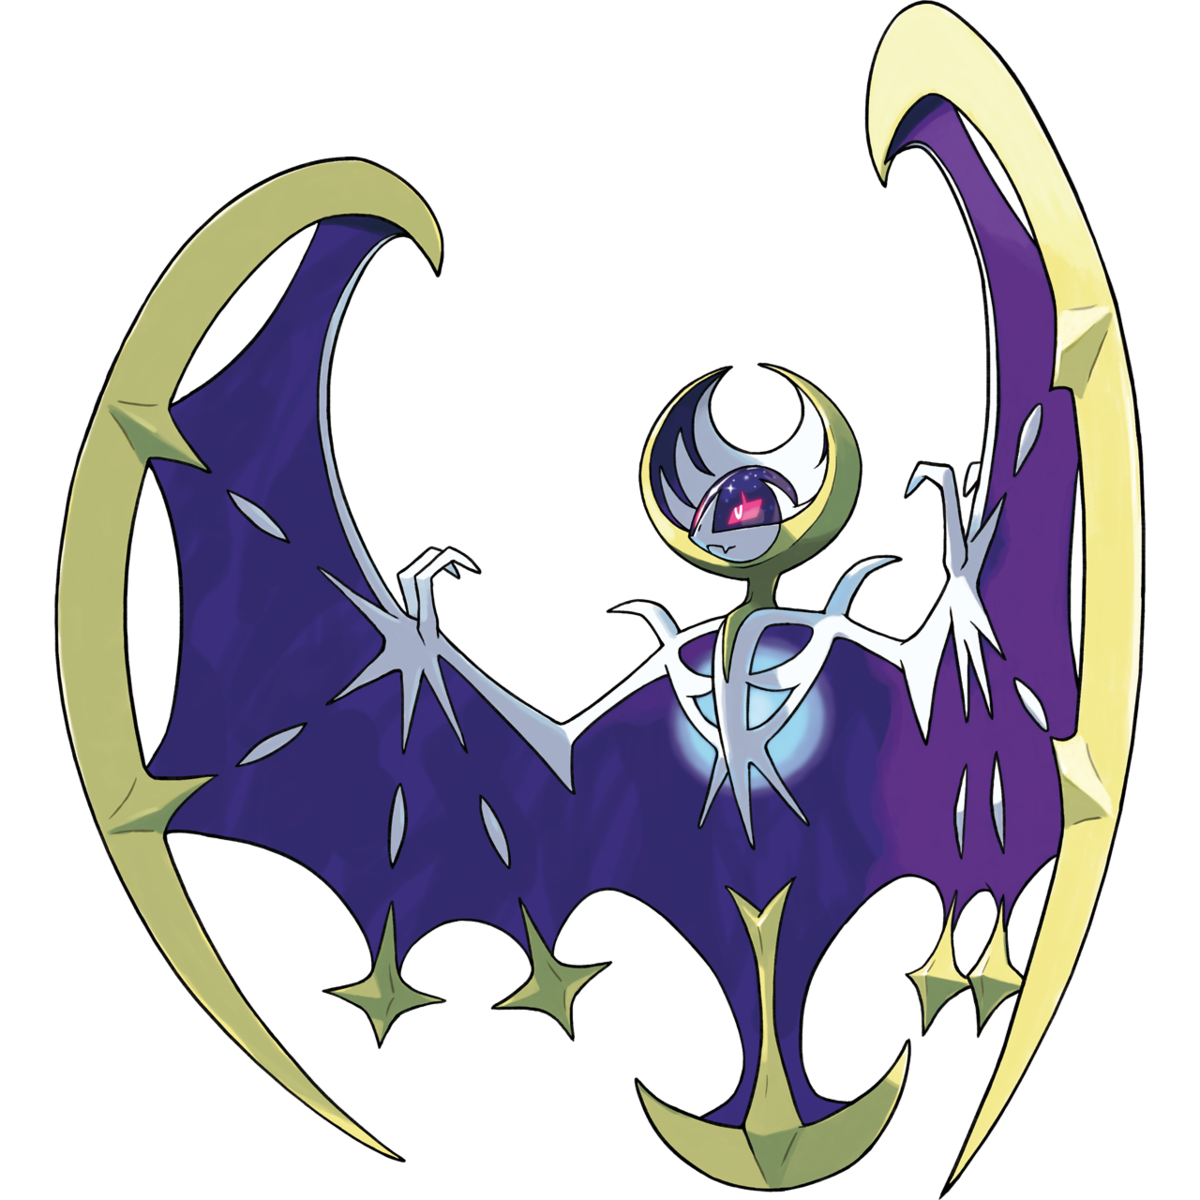 Pokemon moon png. Lunala pok mon bulbapedia